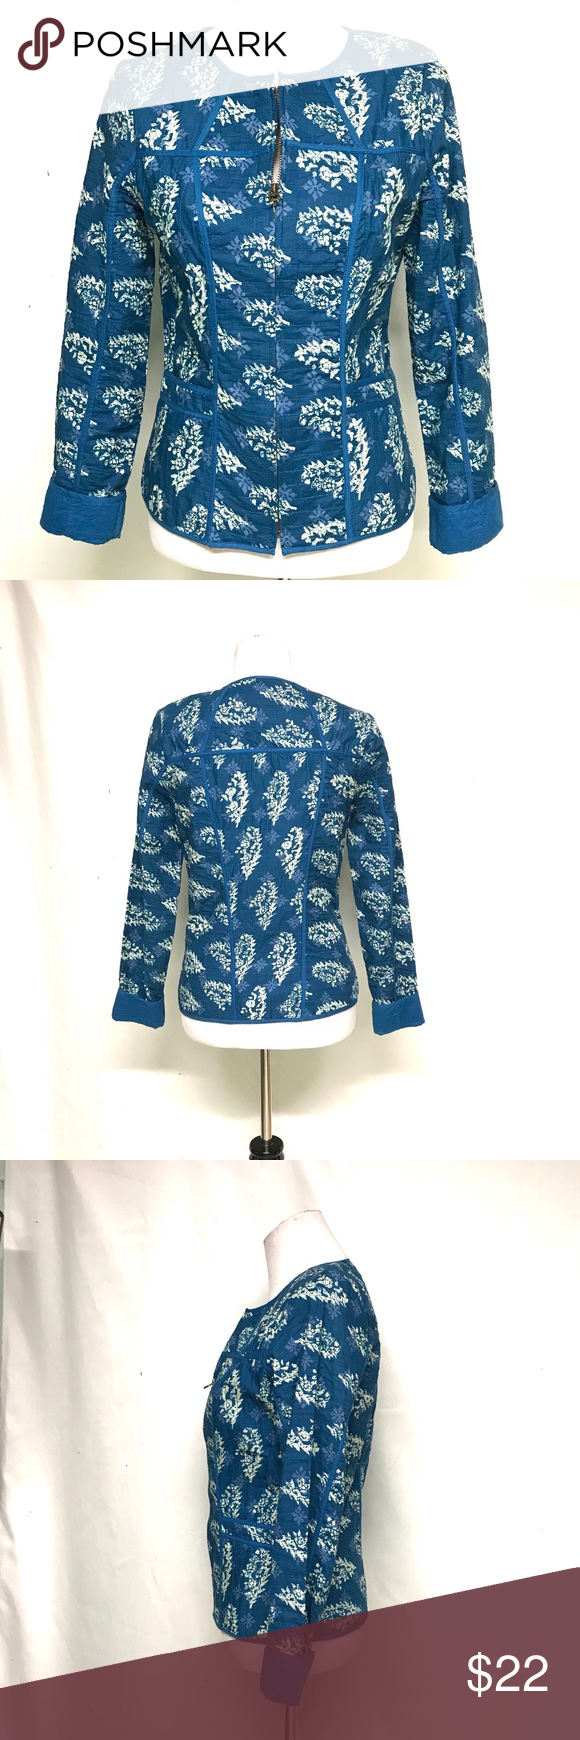 Lucky brand blue and ivory quilted jacket Vintage looking